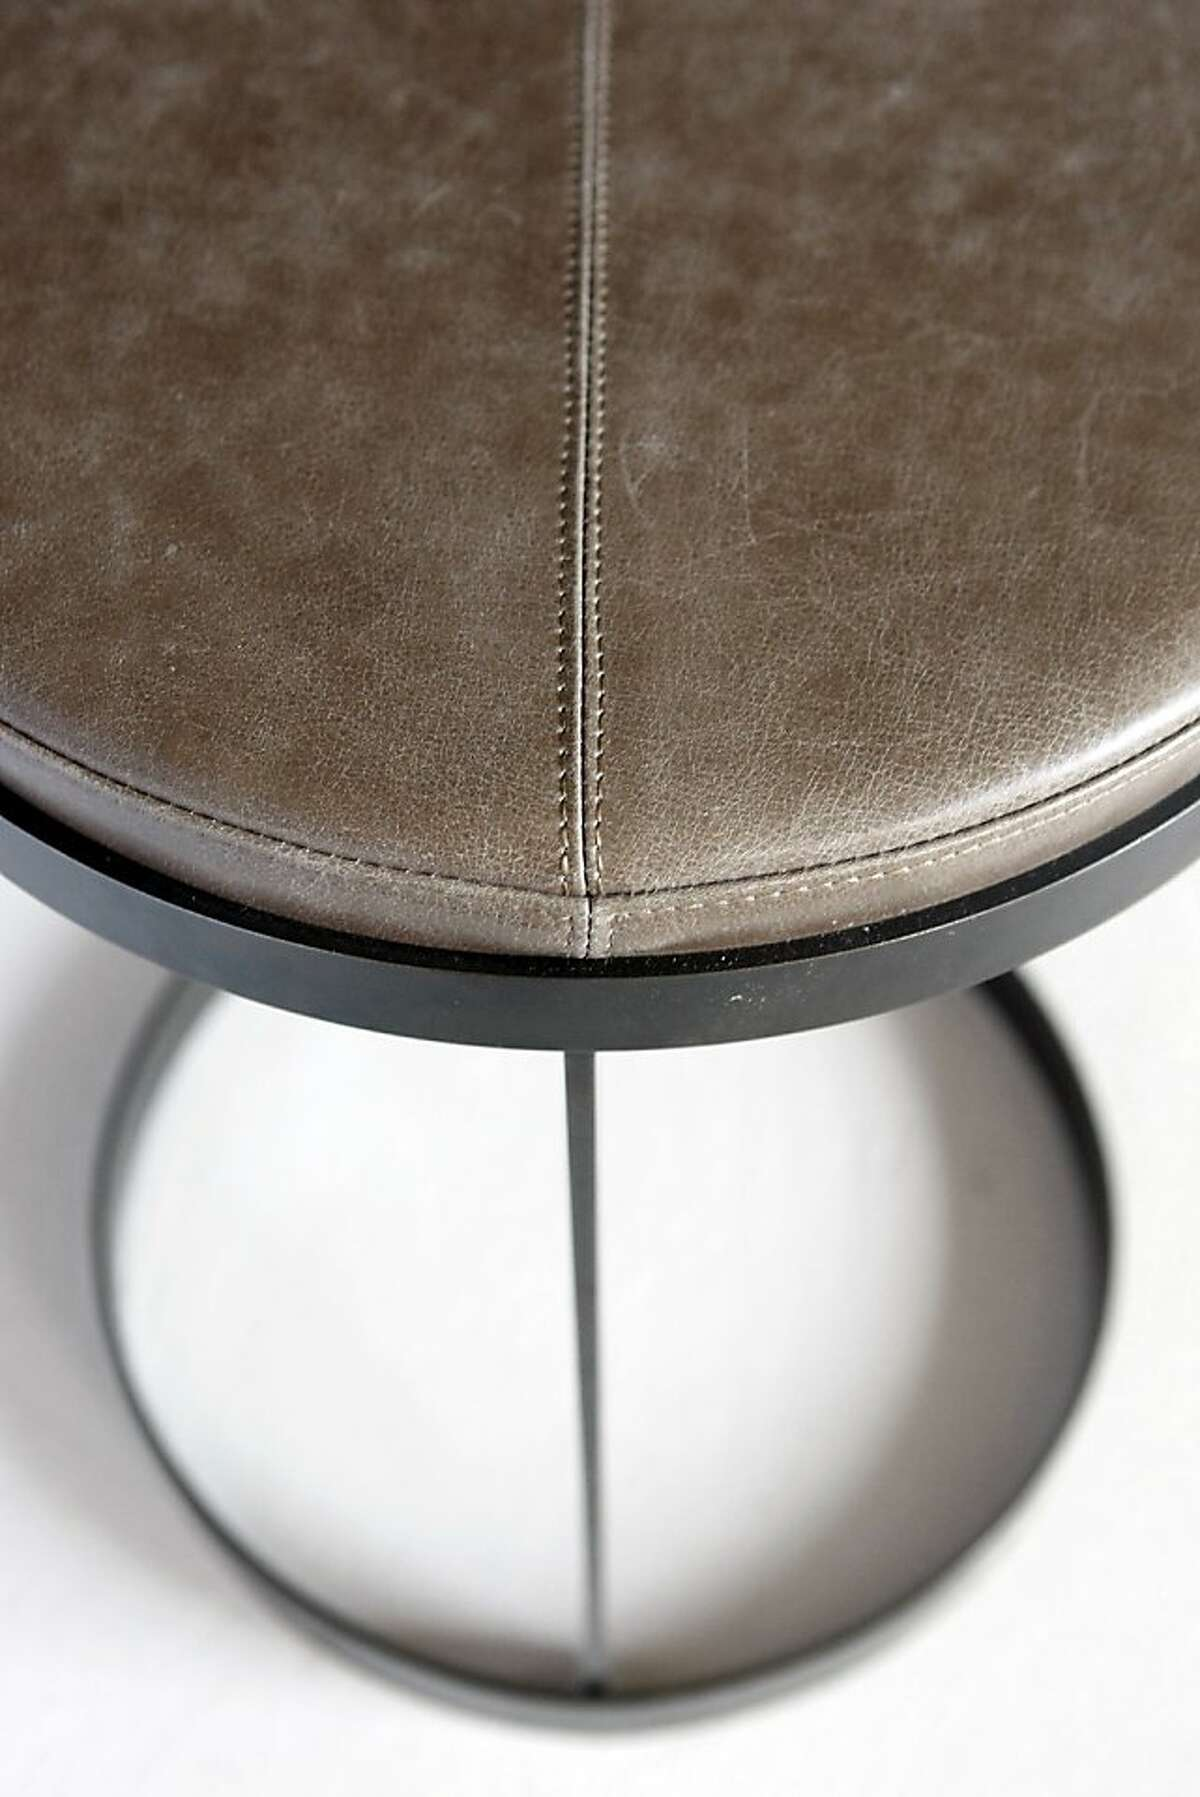 The PALLETstool from Branden Adams' collection, featured in the New West Coast Design 2 show.